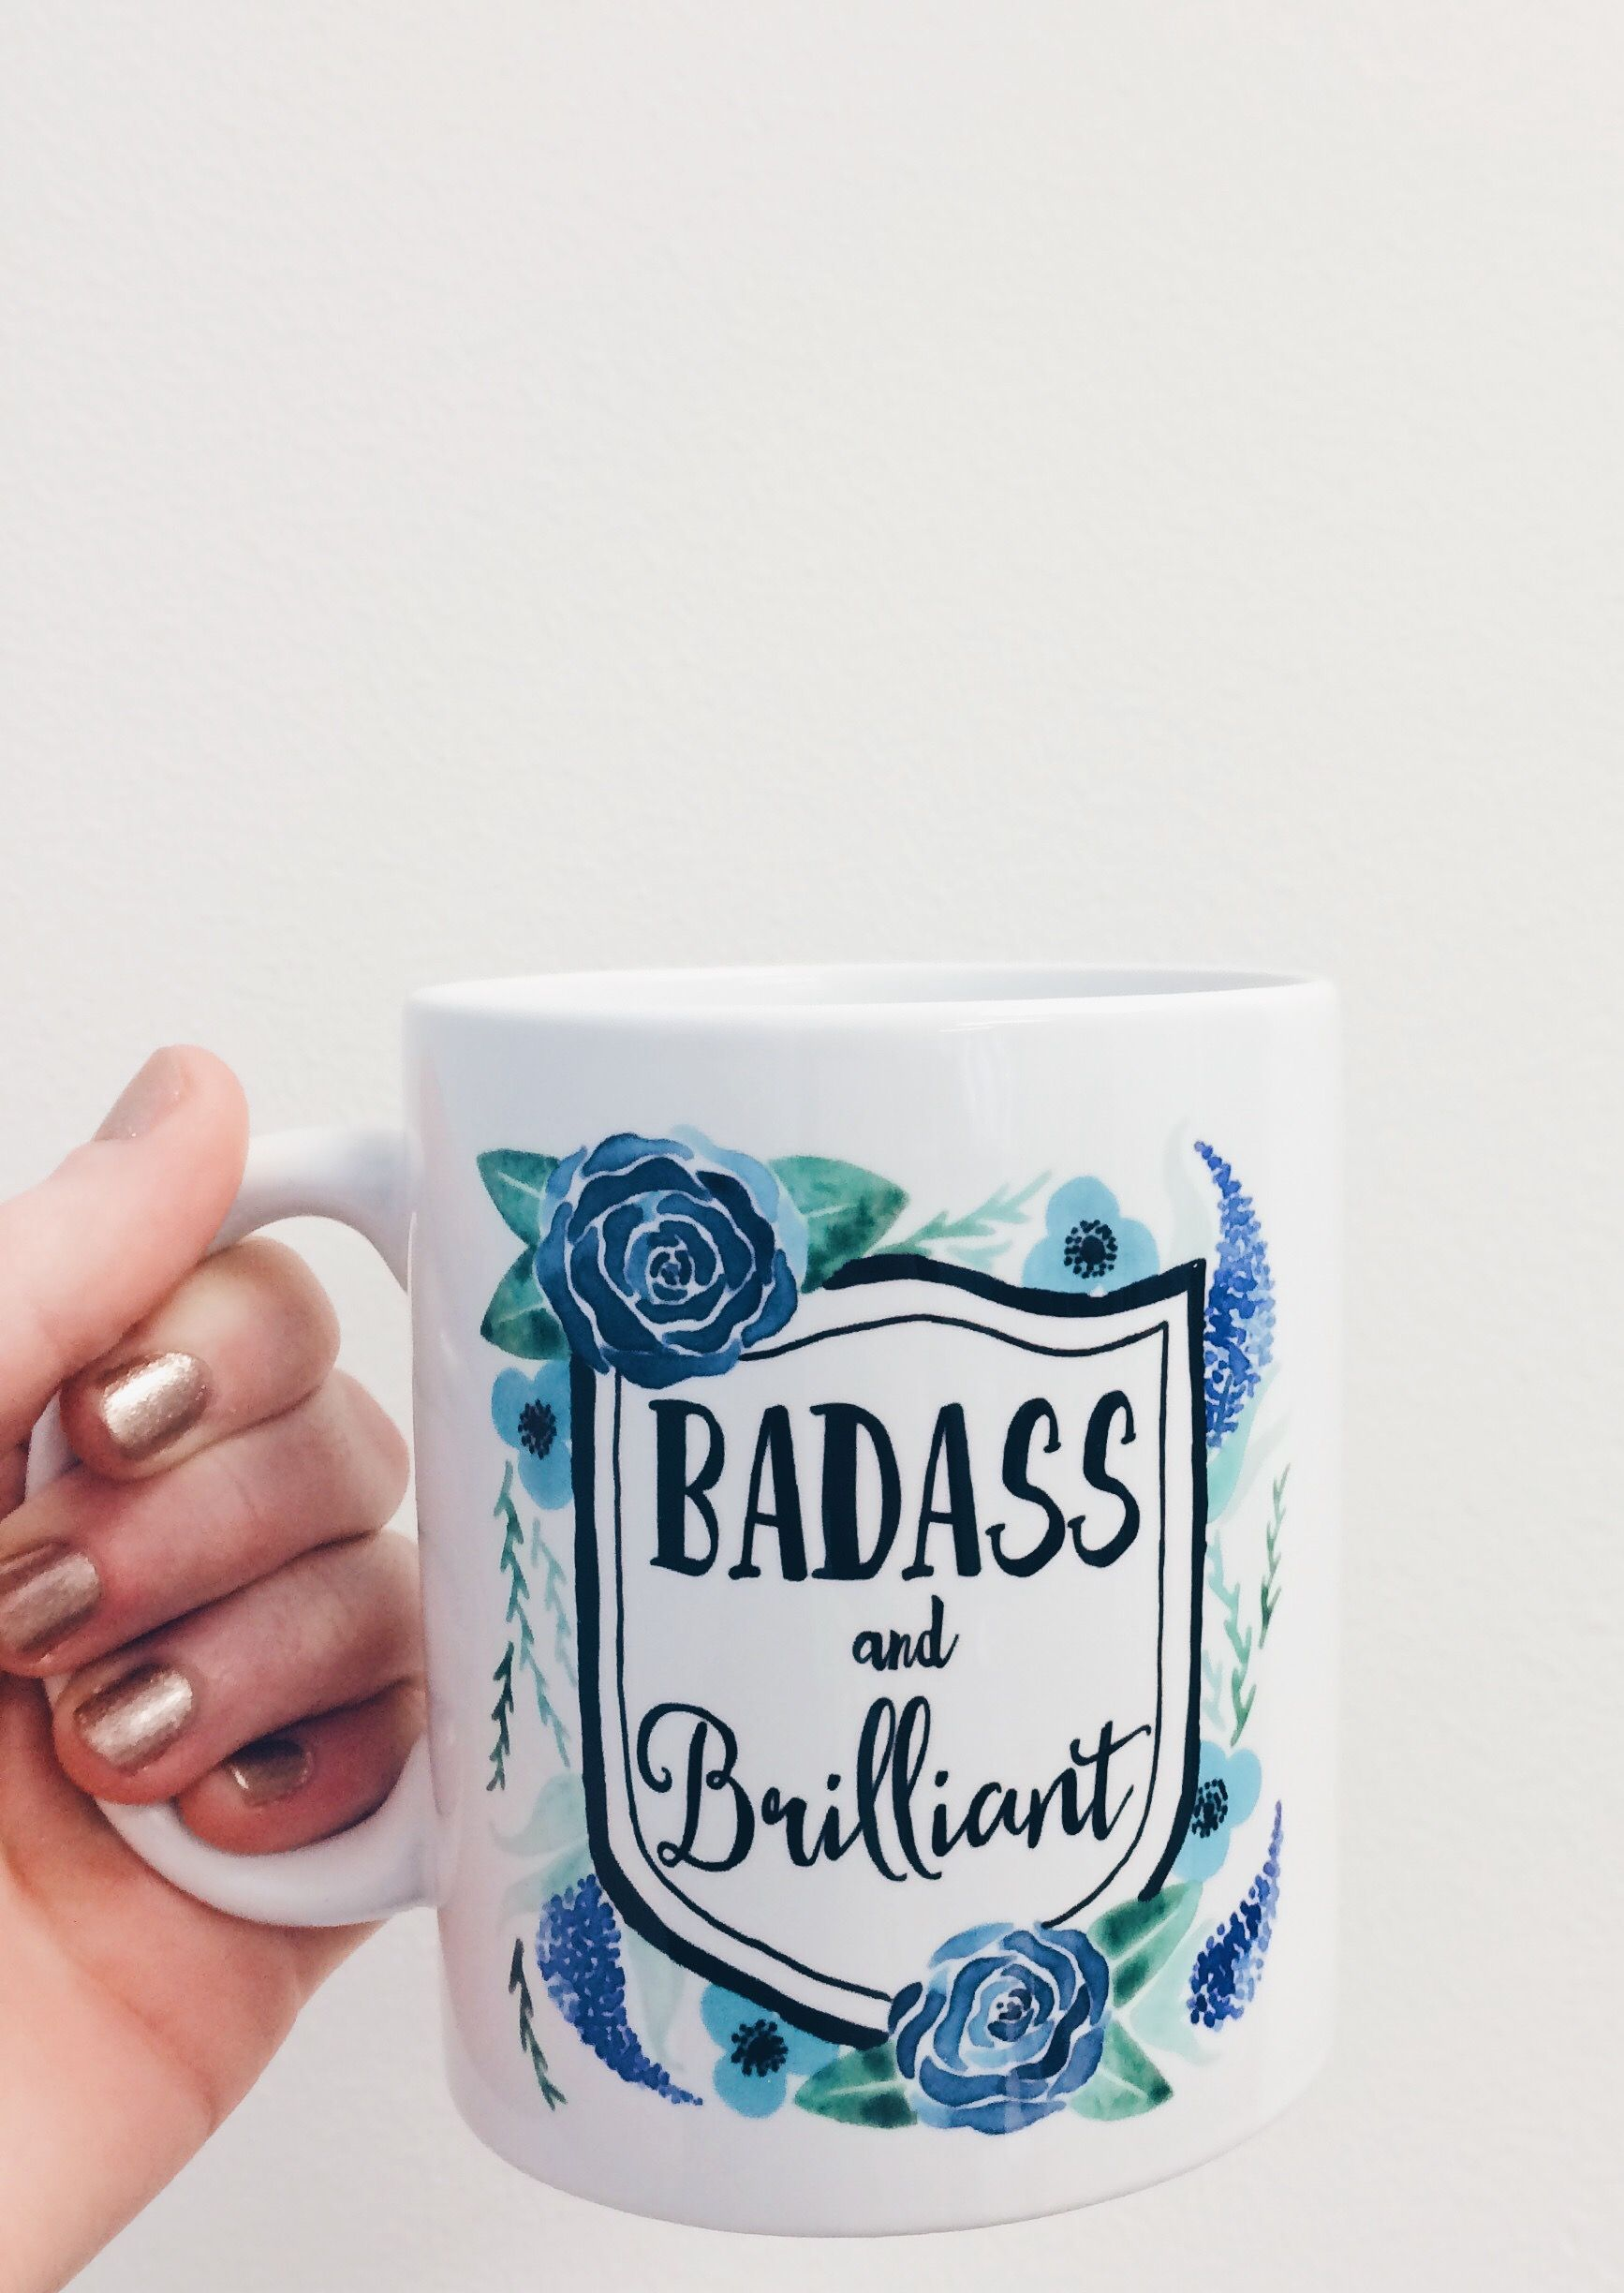 For the totally badass and brilliant coffee drinker Mugs